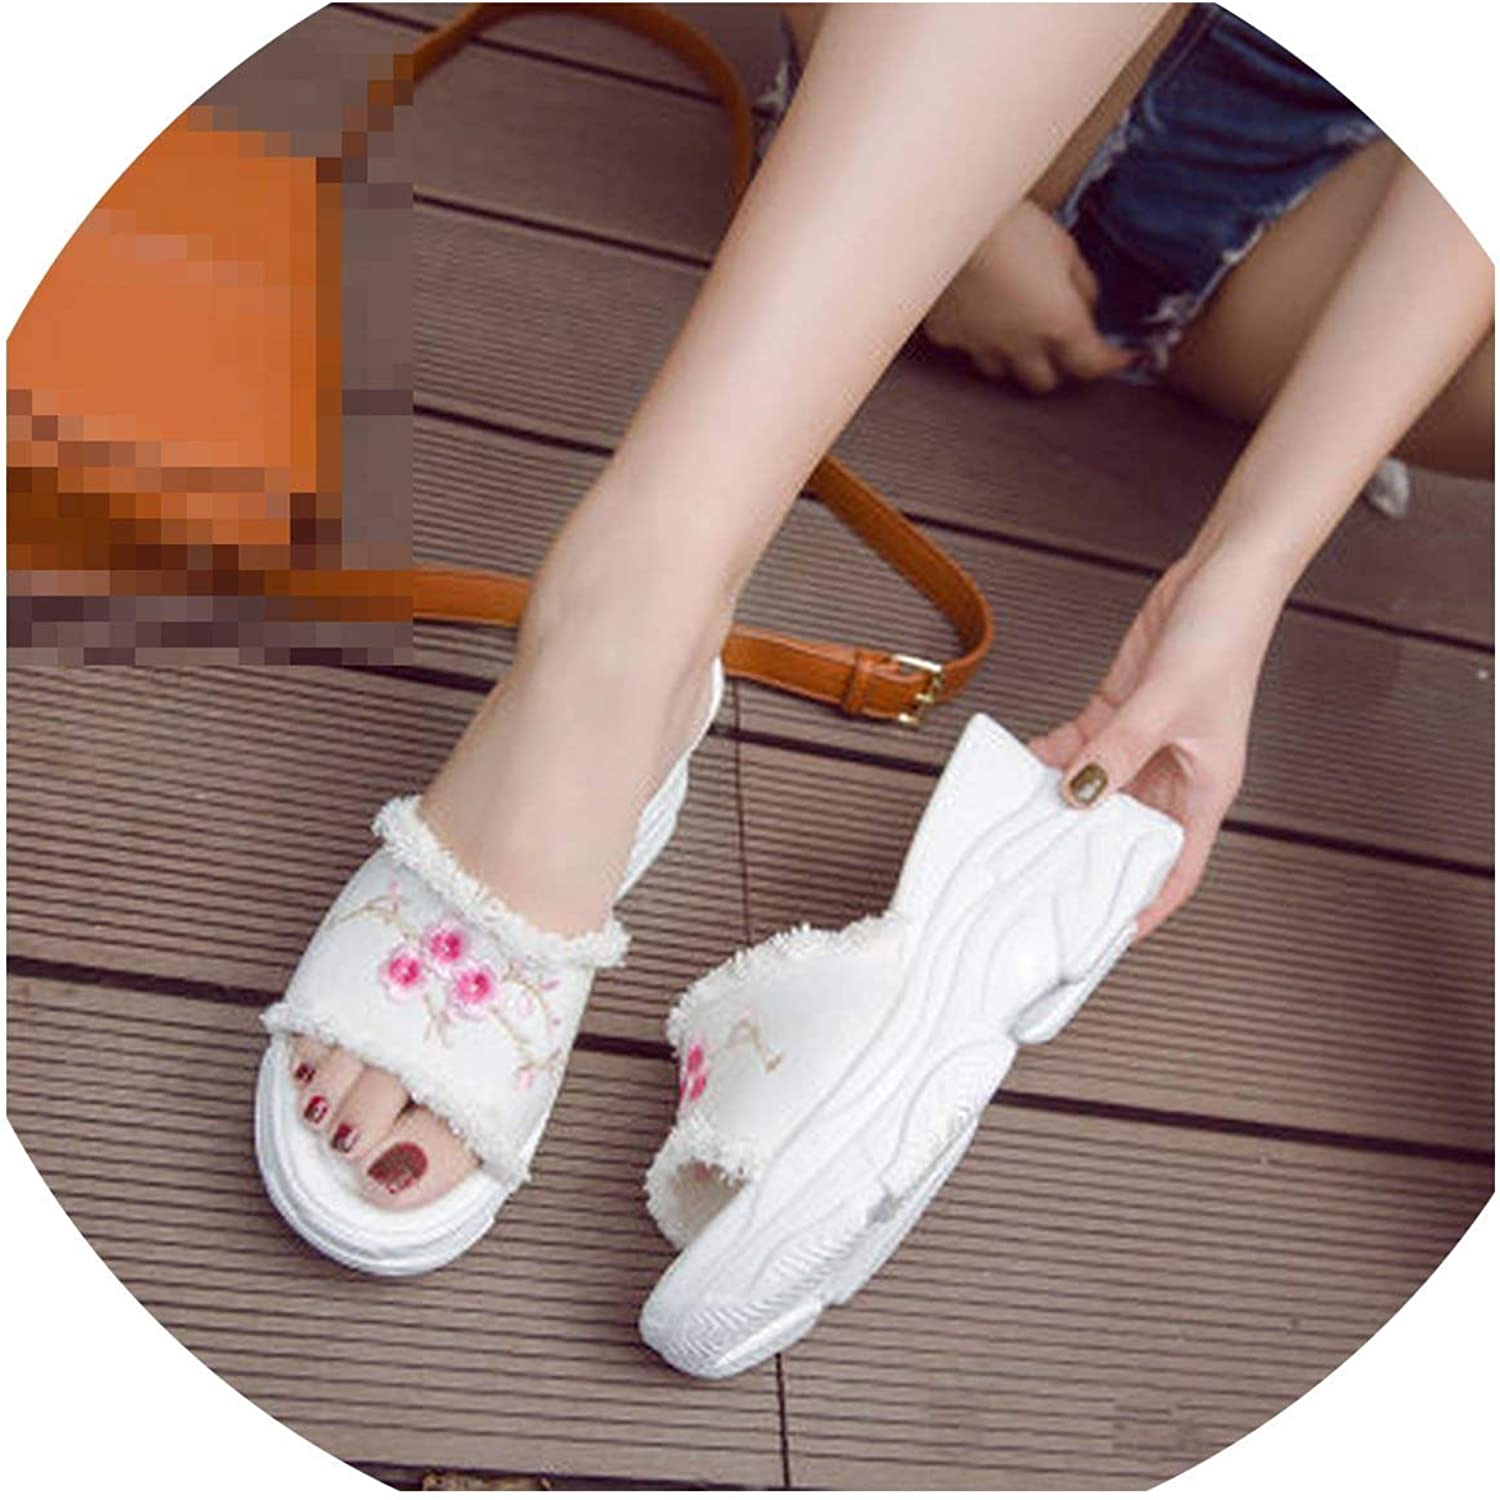 Embroidered high-Heeled Sandals and Slippers Word Sandals Outside Wedges Platform Denim